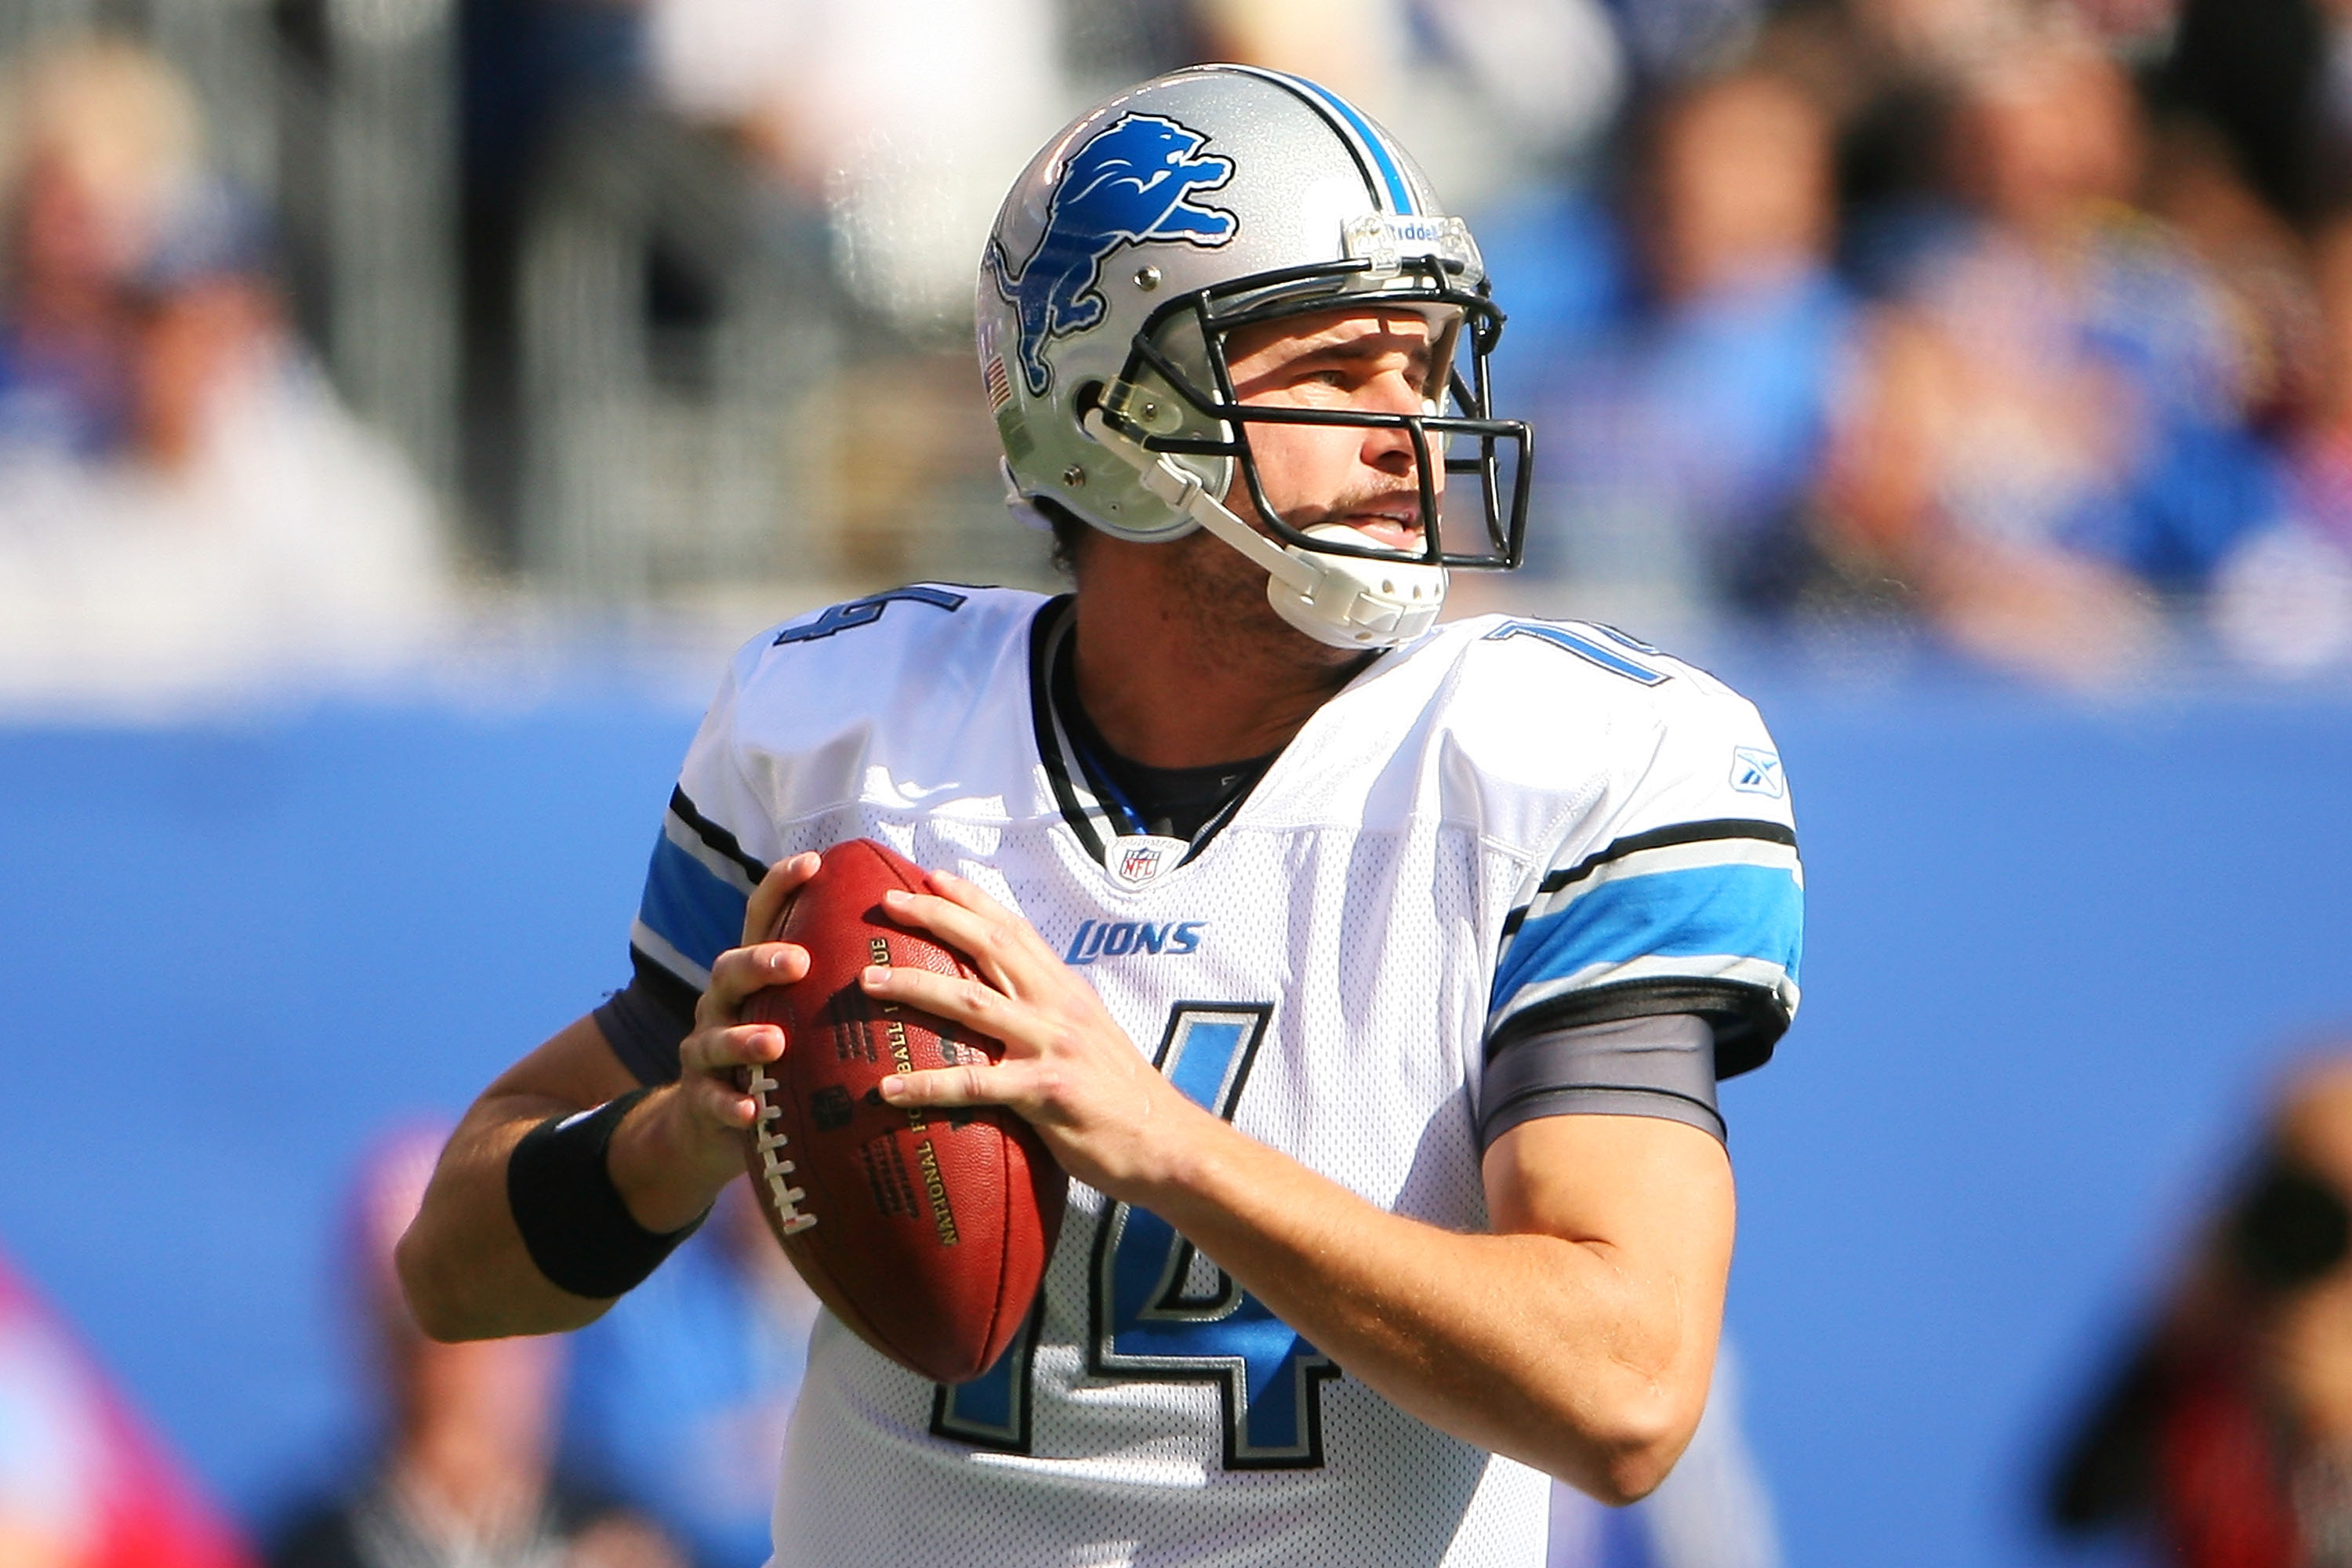 EAST RUTHERFORD, NJ - OCTOBER 17:  Shaun Hill #14 of the Detroit Lions drops back to pass against the New York Giants at New Meadowlands Stadium on October 17, 2010 in East Rutherford, New Jersey.  (Photo by Andrew Burton/Getty Images)